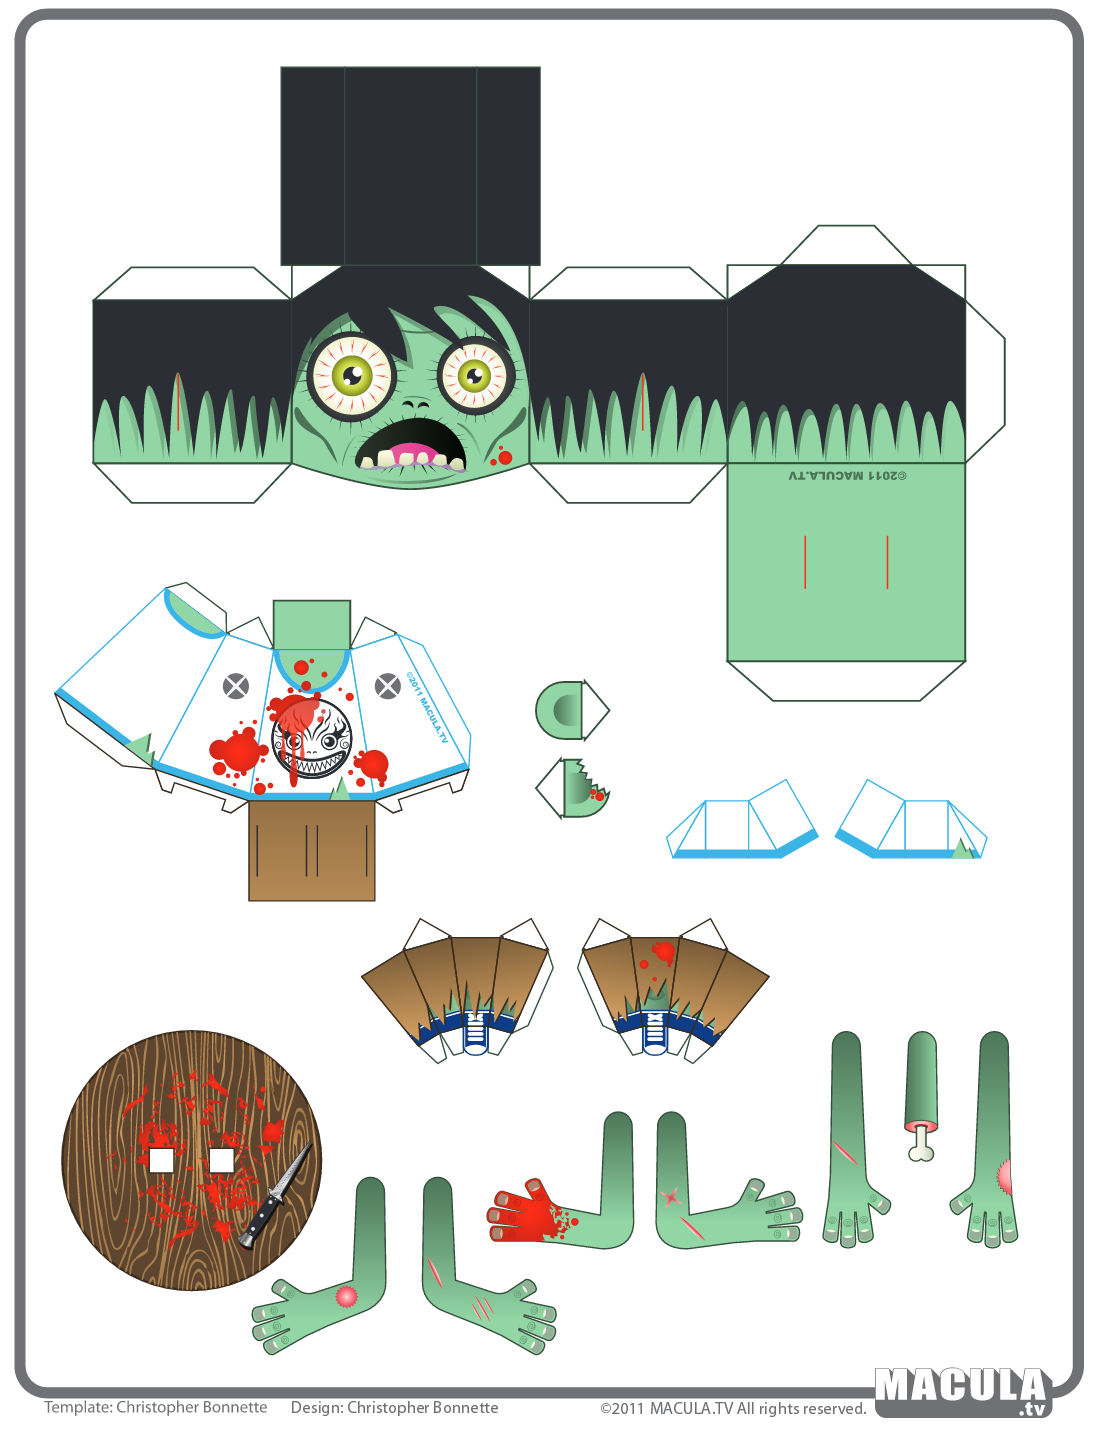 Pin by crafty annabelle on zombies printables pinterest paper paper puppets paper toys halloween paper crafts mini craft plants vs zombies printable paper free printable paper models origami paper jeuxipadfo Images